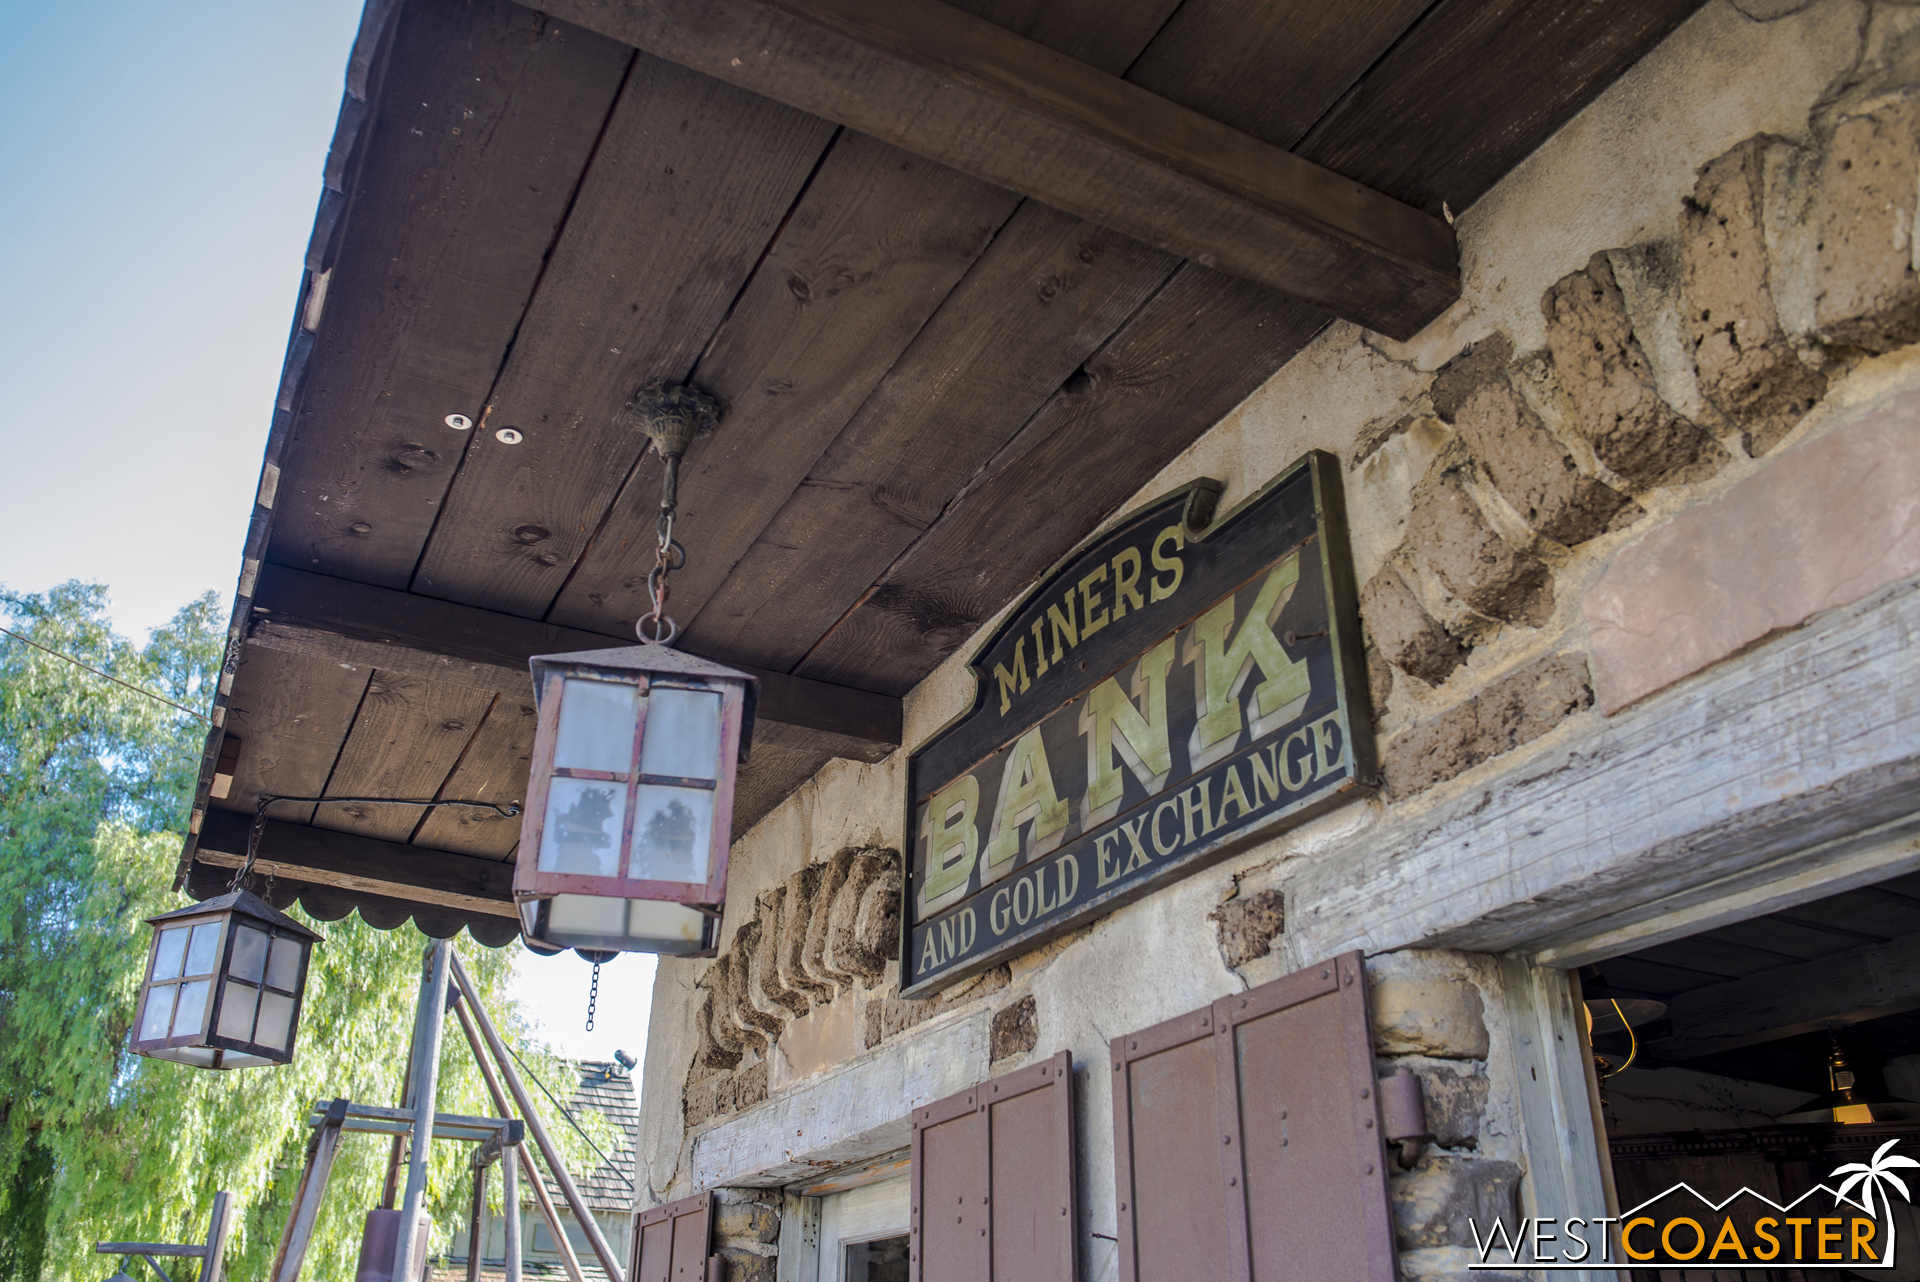 The Miner's Bank was home to one of two robberies earlier in the day, though this one unsuccessful.